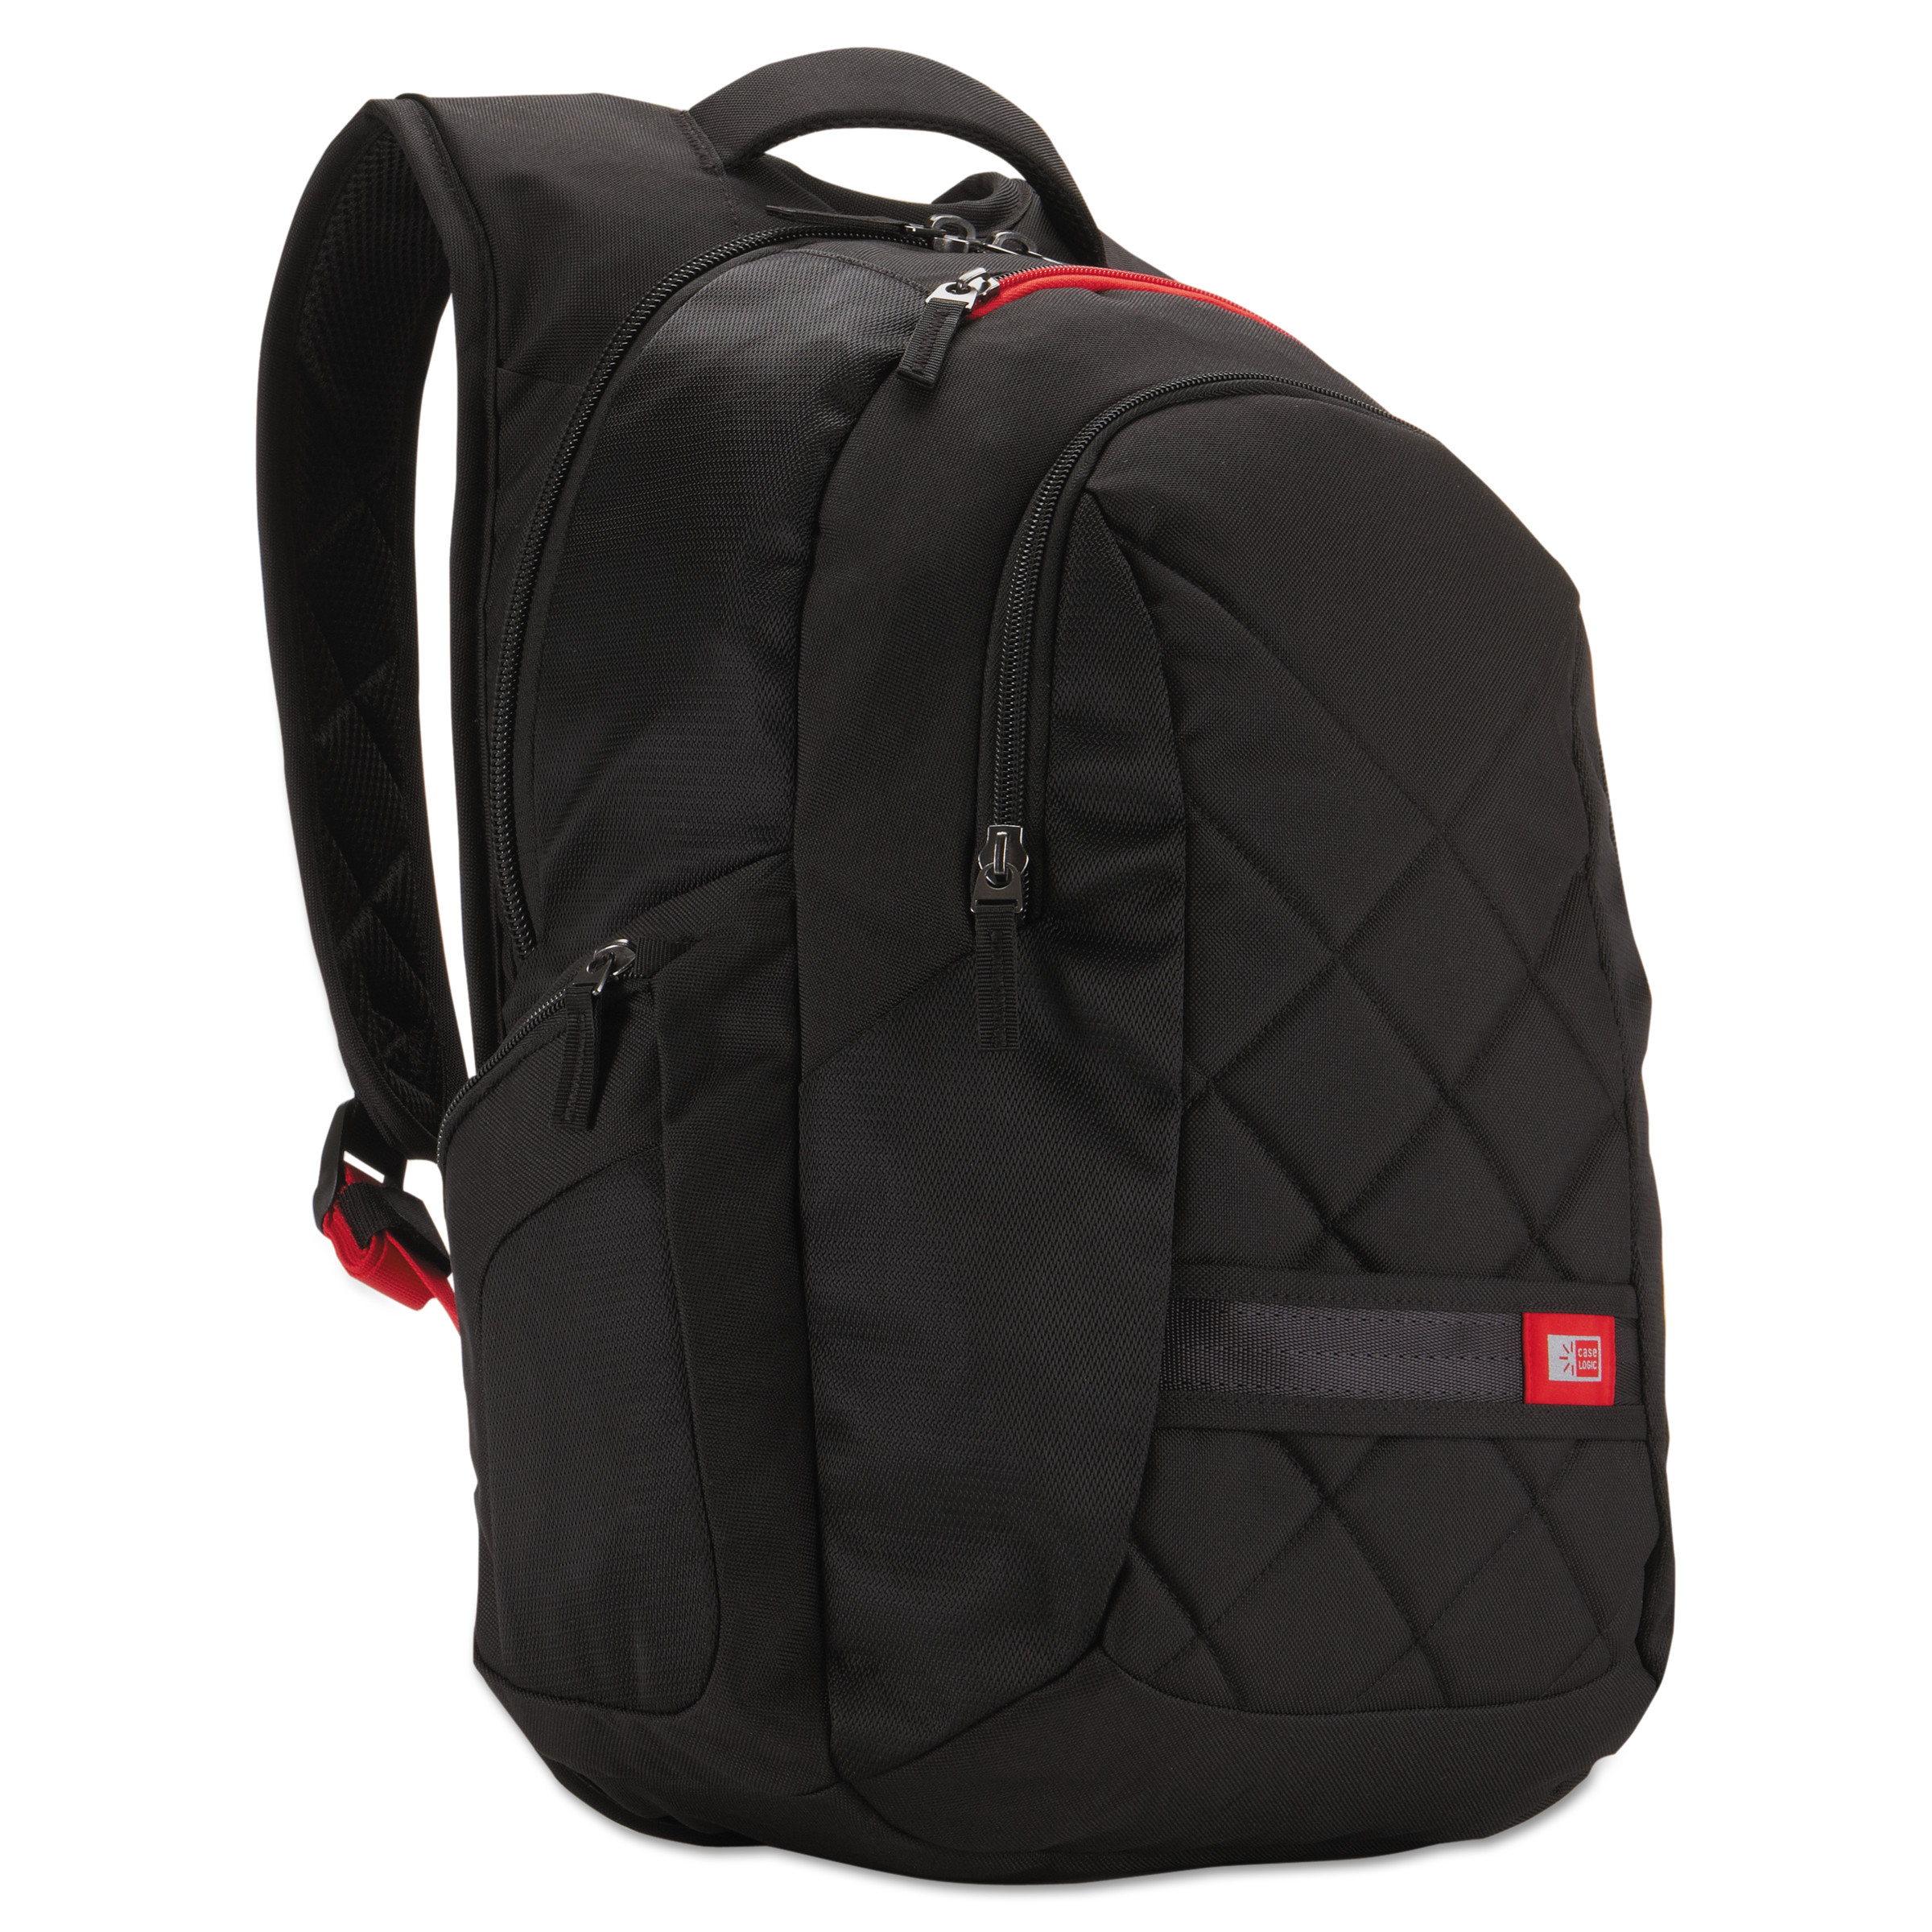 "Case Logic 16"" Laptop Backpack, 9 1/2 x 14 x 16 3/4, Black"